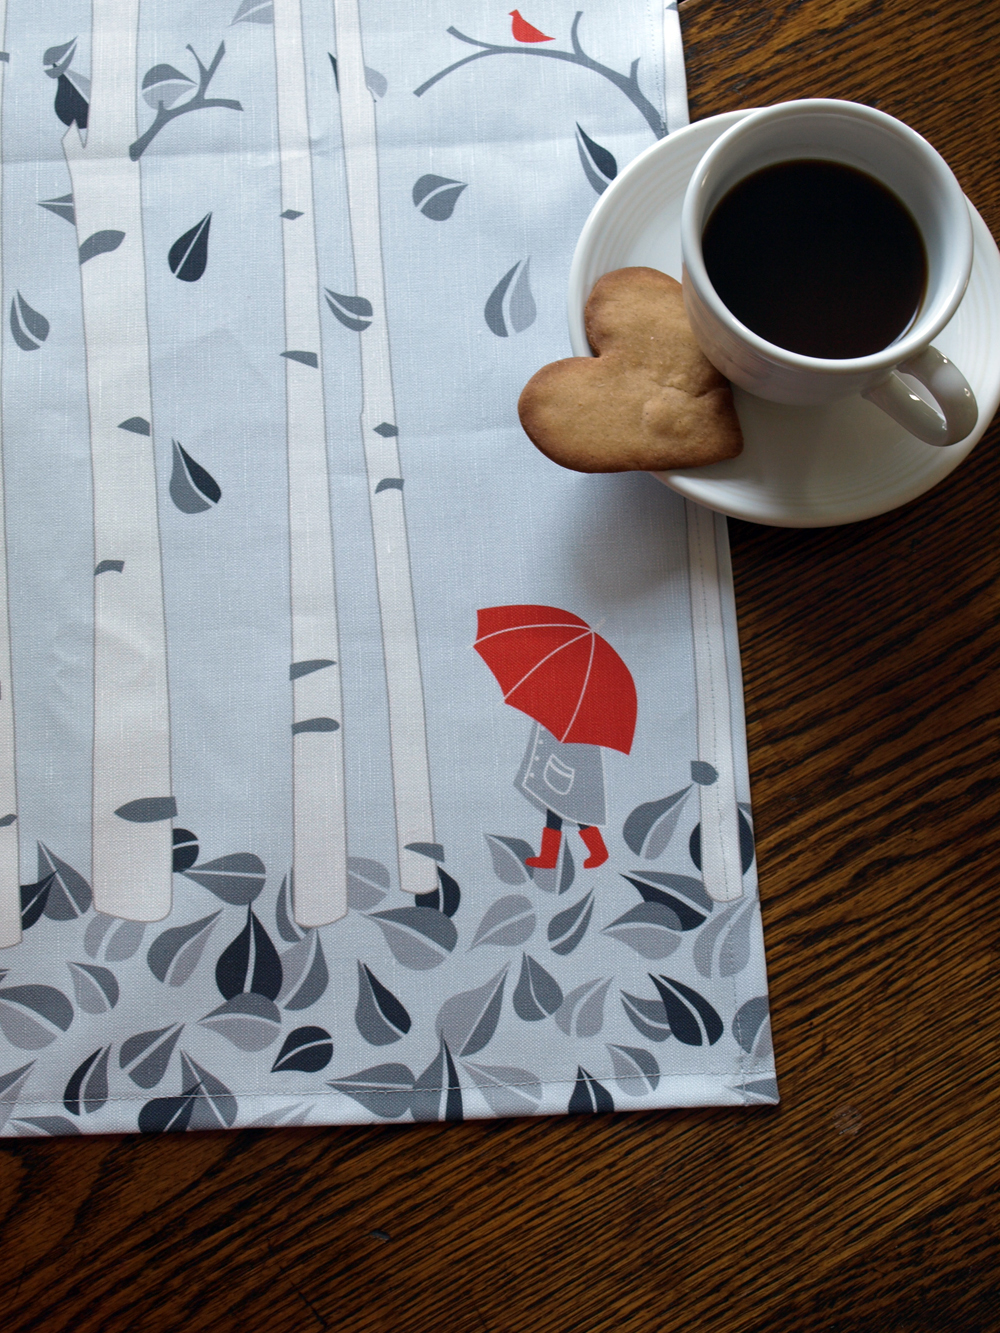 After many, many requests at the Swedish Yuletide Market in Boston, I now offer my birch tree pattern as a tea towel (16x25 inches). Thank you all for the suggestion! (See another design you would like in a different product than we offer? Weigh in on our facebook page!)